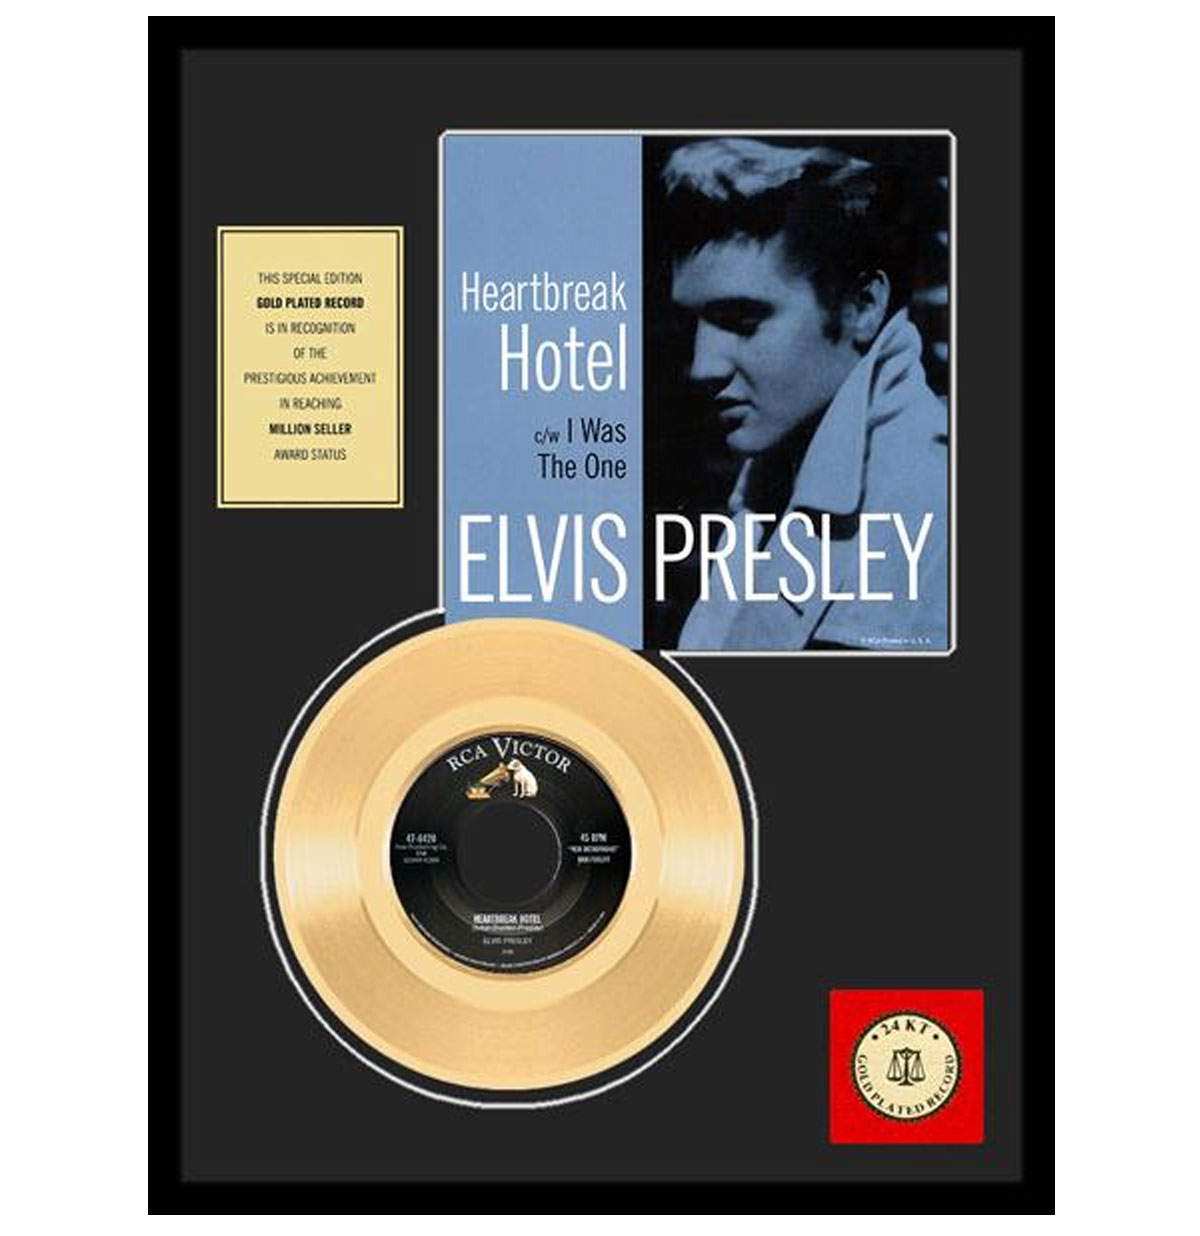 Elvis Presley - Heartbreak Hotel Gouden Plaat (45RPM)